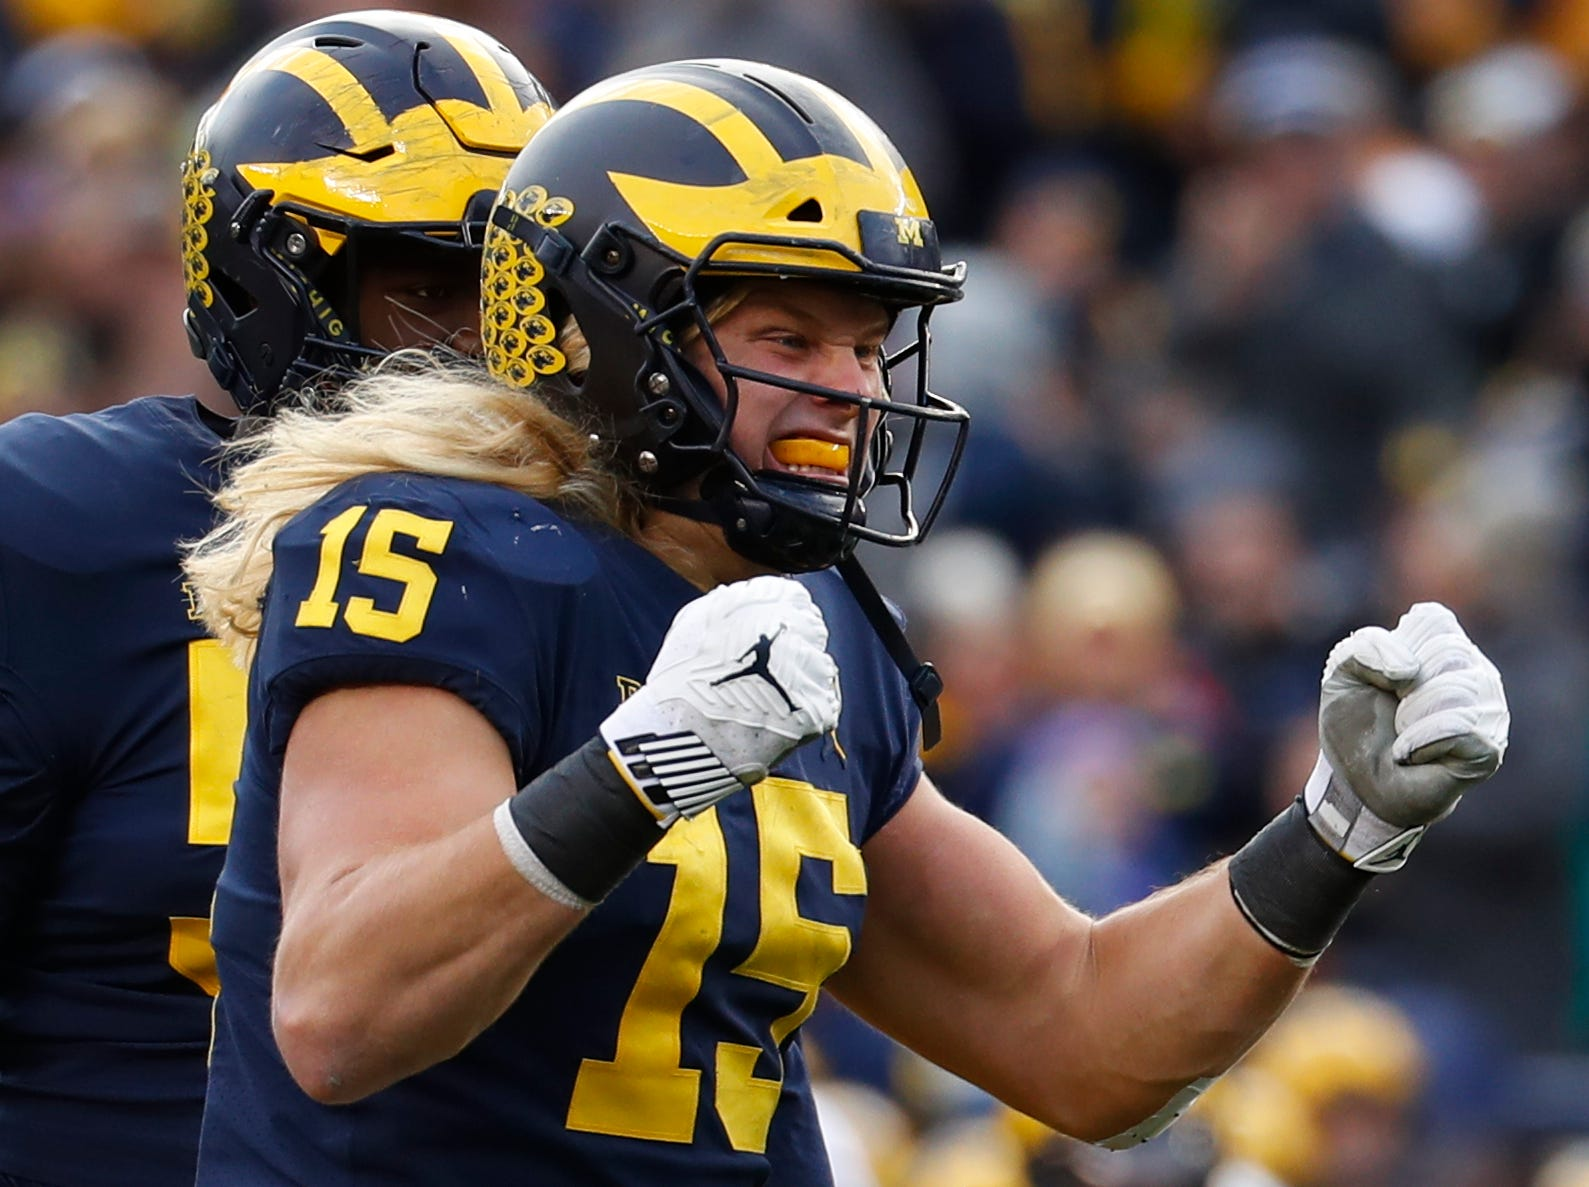 Michigan defensive lineman Chase Winovich (15) celebrates a stop against Penn State in the first half of an NCAA college football game in Ann Arbor, Mich., Saturday, Nov. 3, 2018. (AP Photo/Paul Sancya)